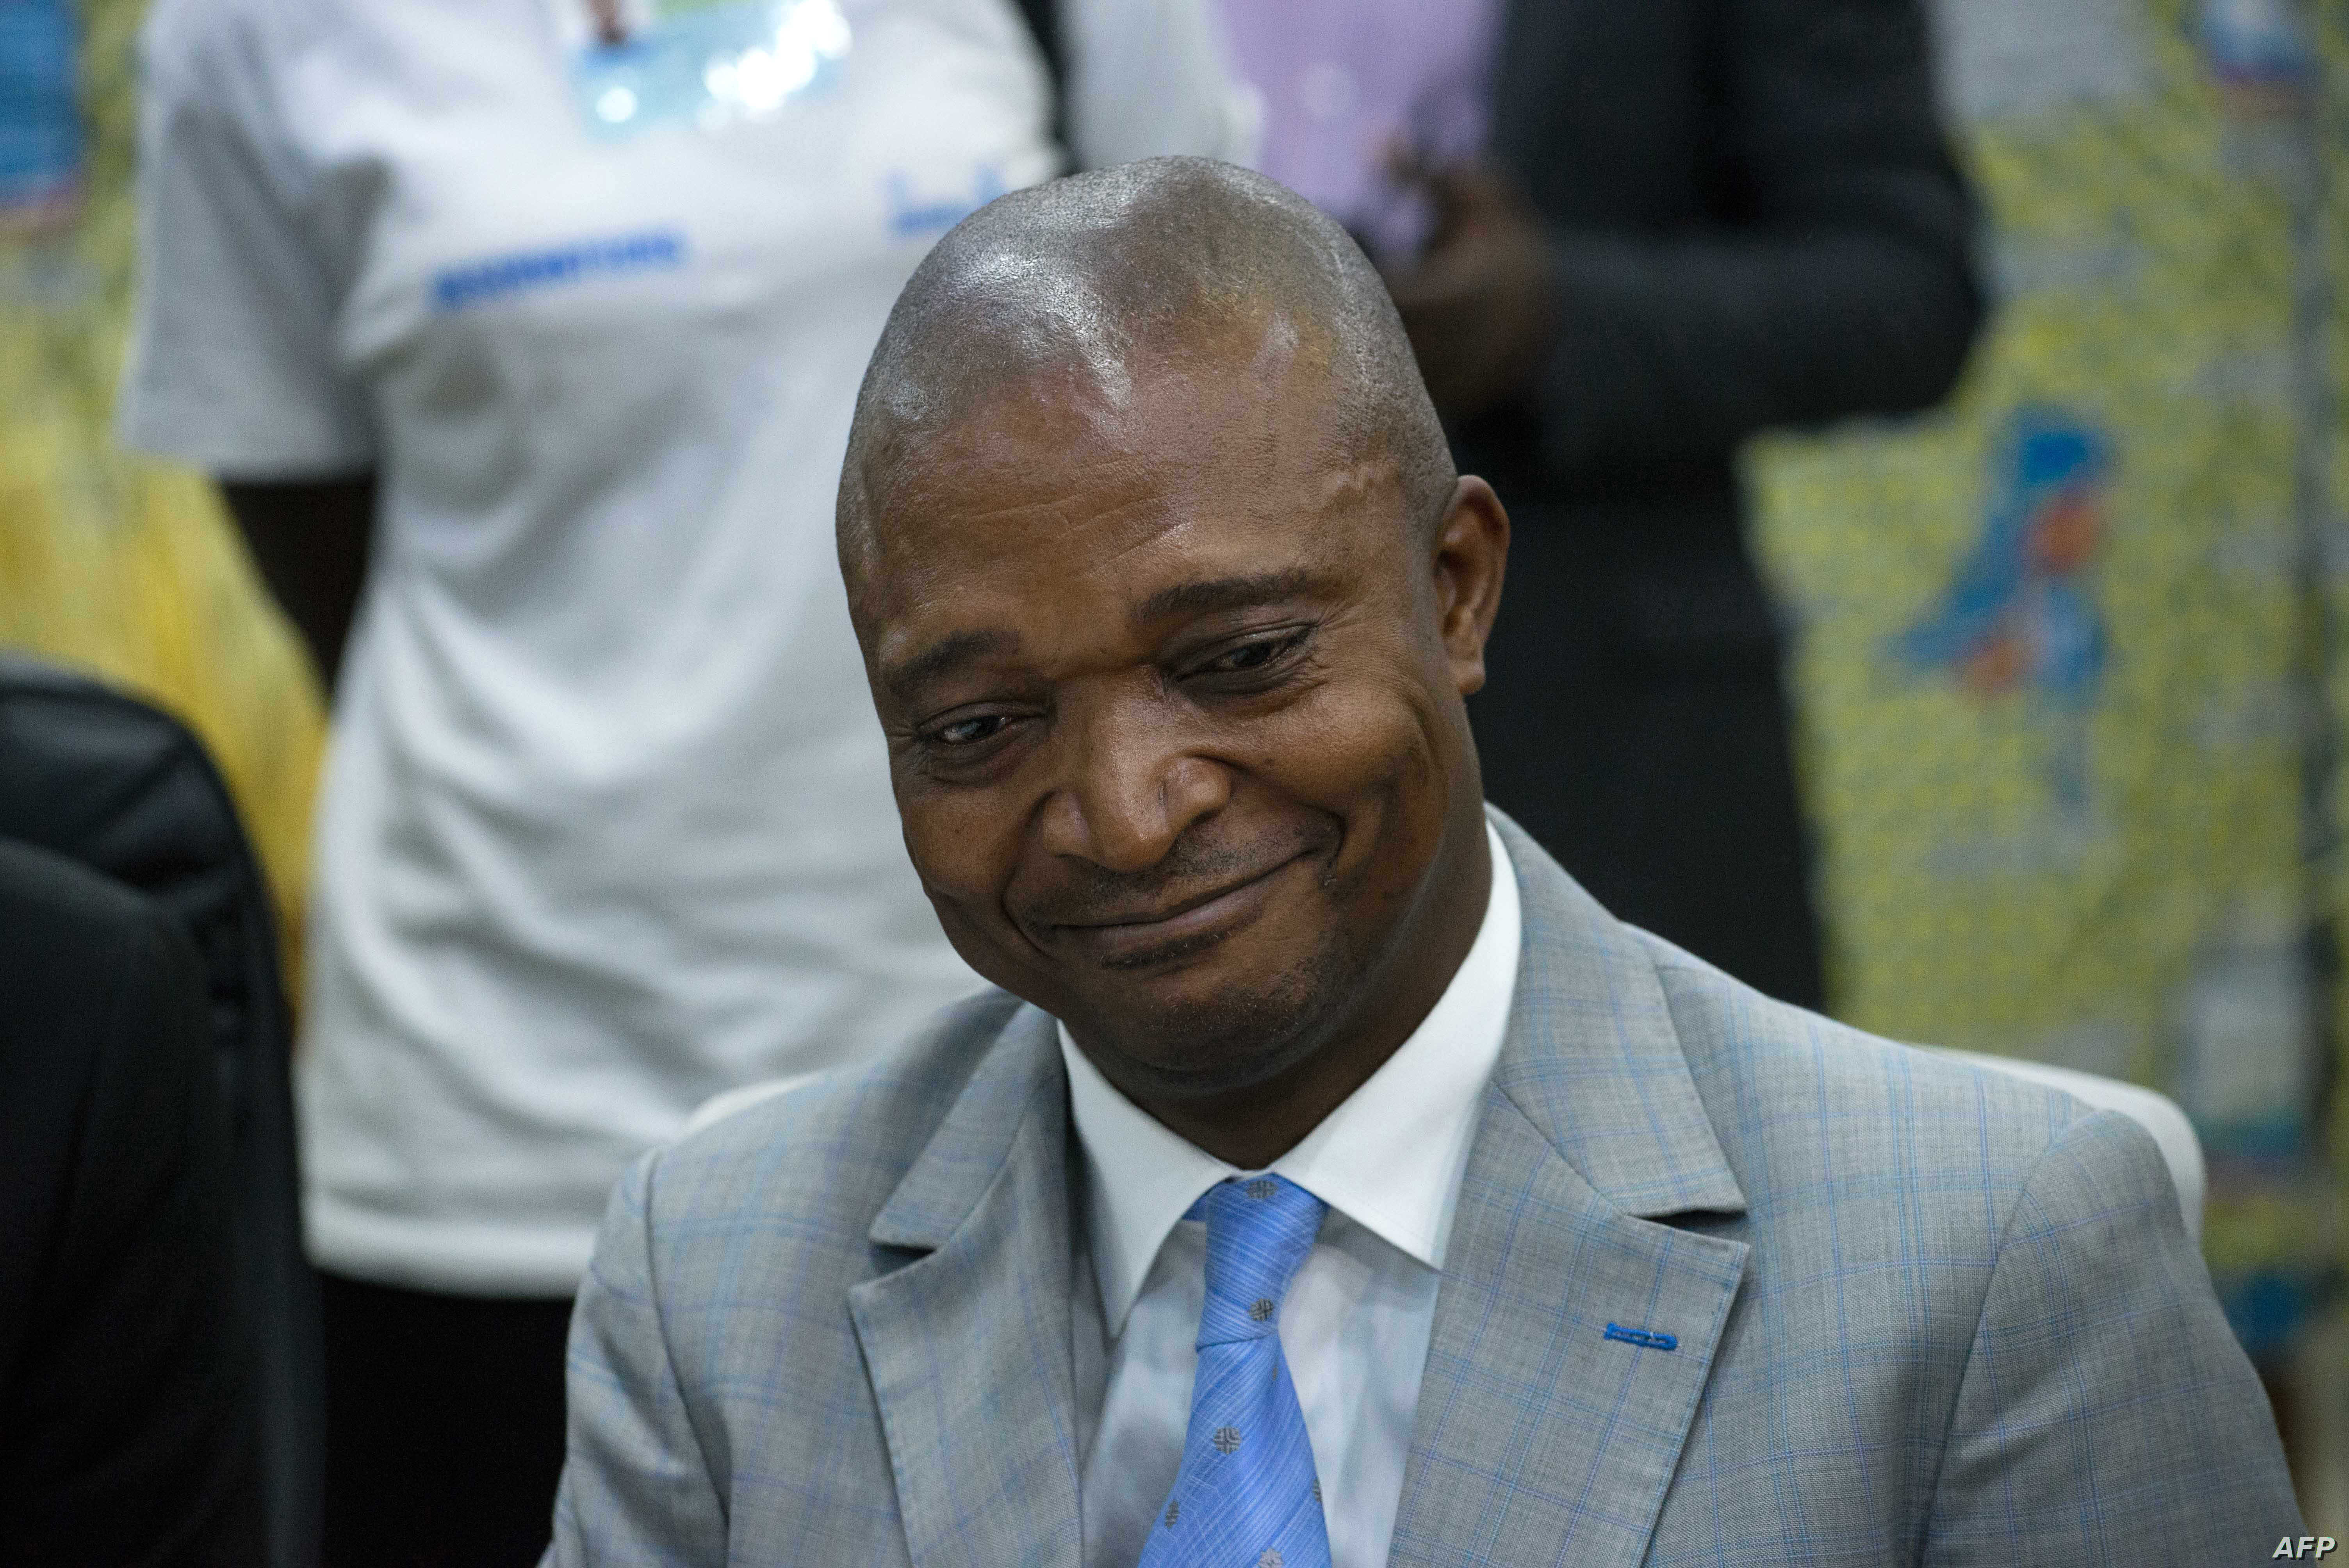 Former interior minister Emmanuel Ramazani Shadary is pictured at the Electoral Commission in Kinshasa, Aug. 8, 2018.